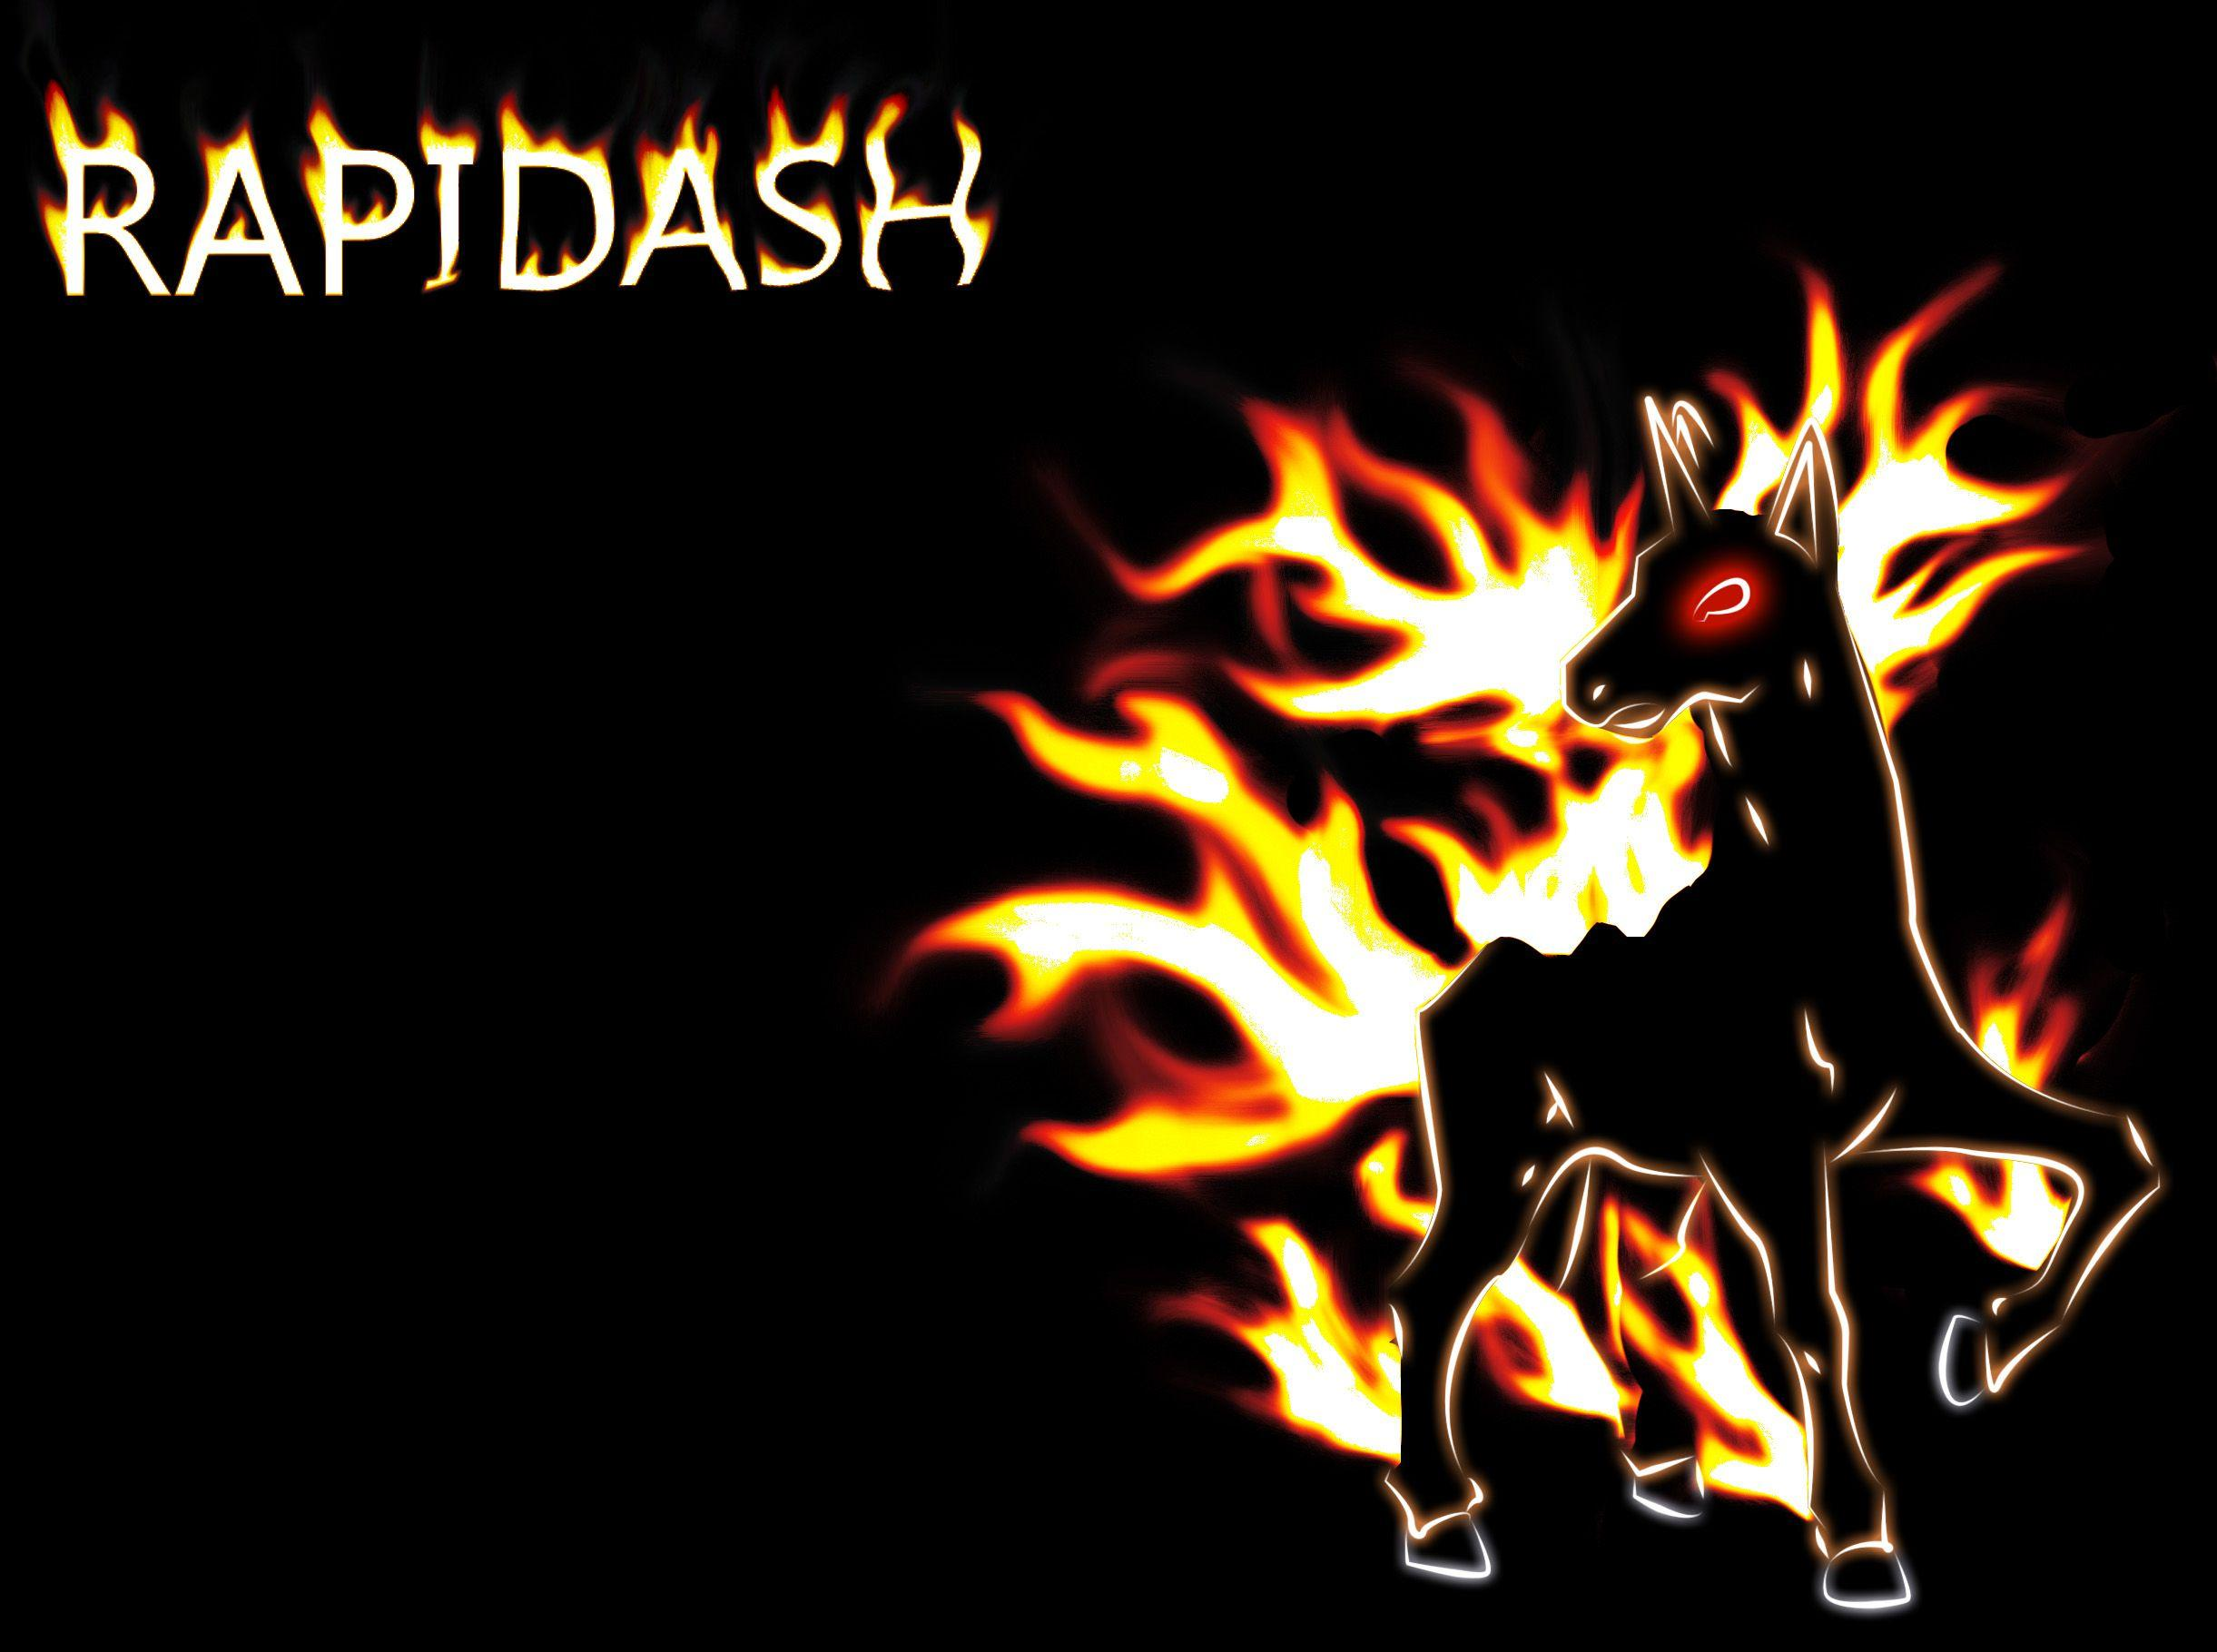 Rapidash Wallpaper by buckheadgar on DeviantArt